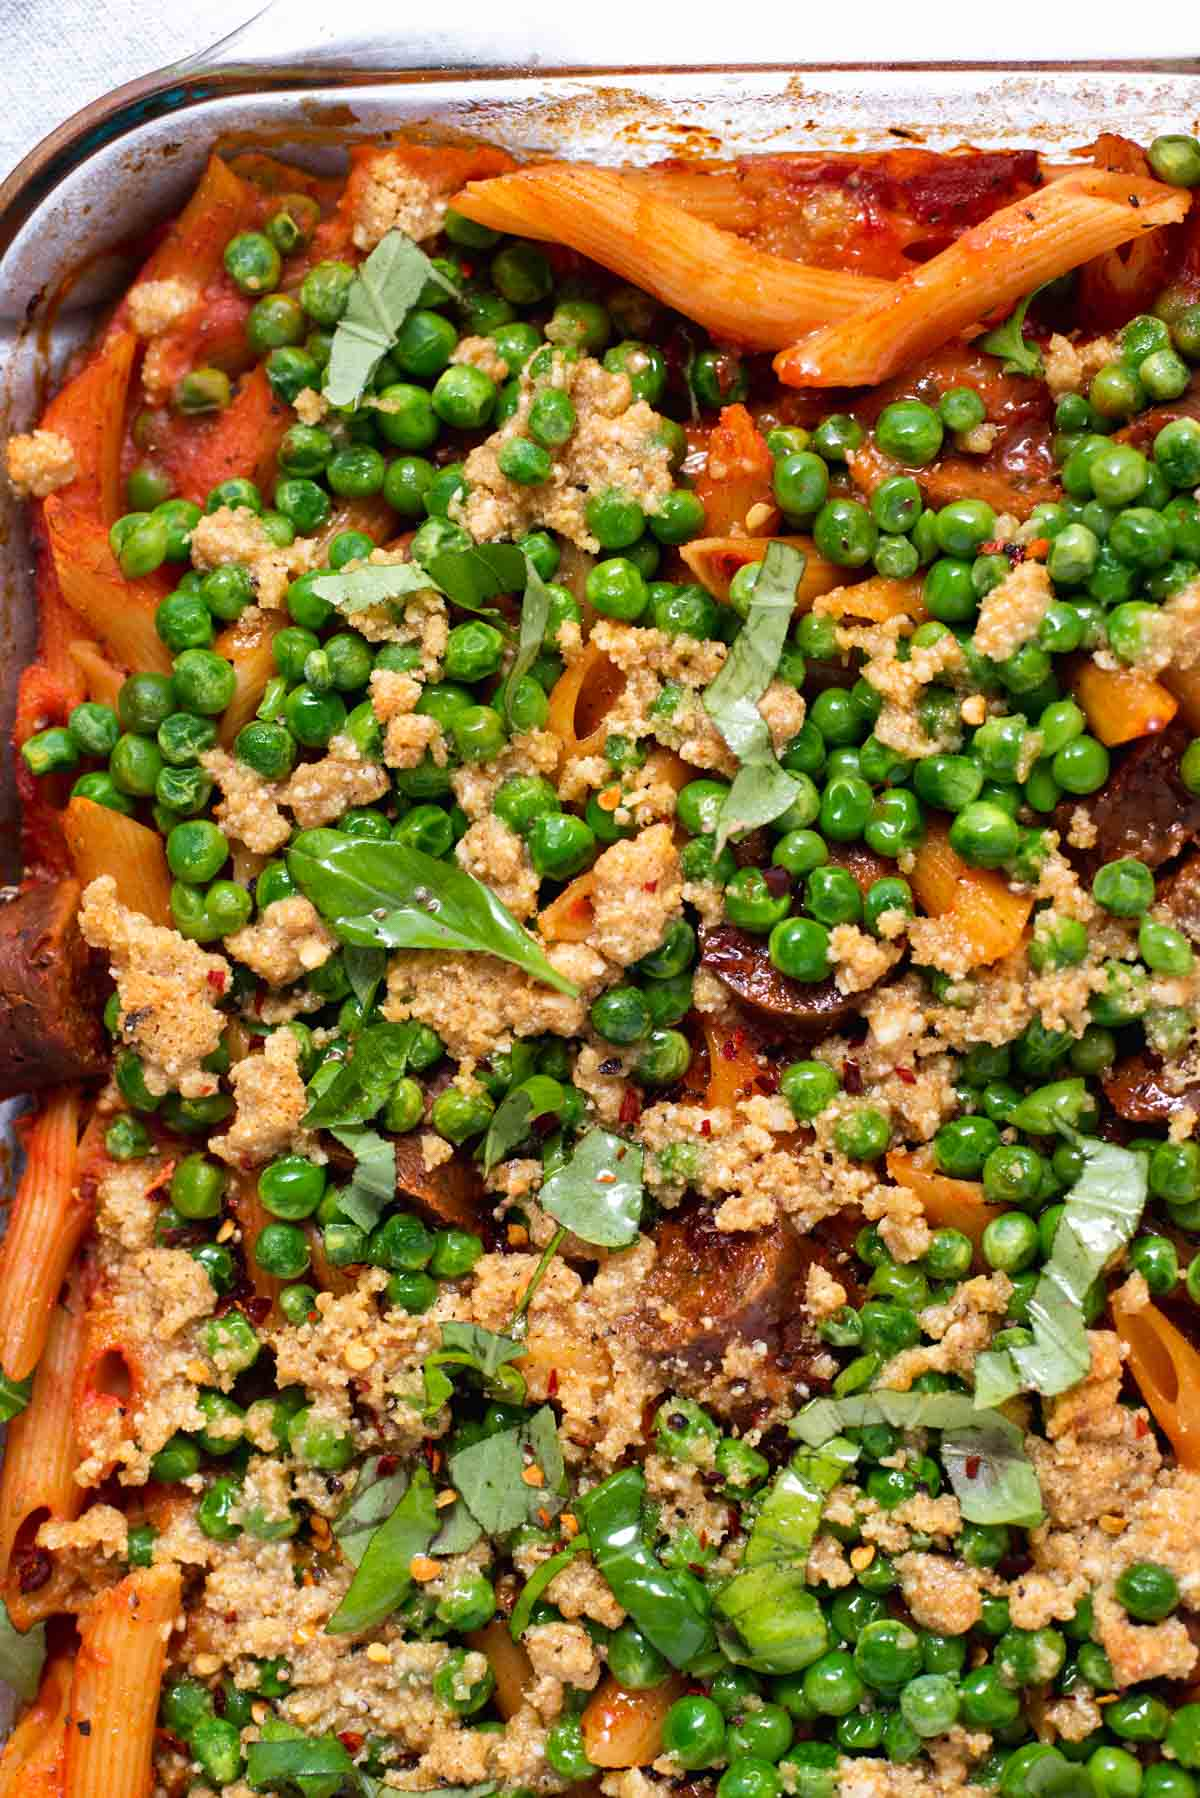 Close up of peas and breadcrumbs on pasta bake